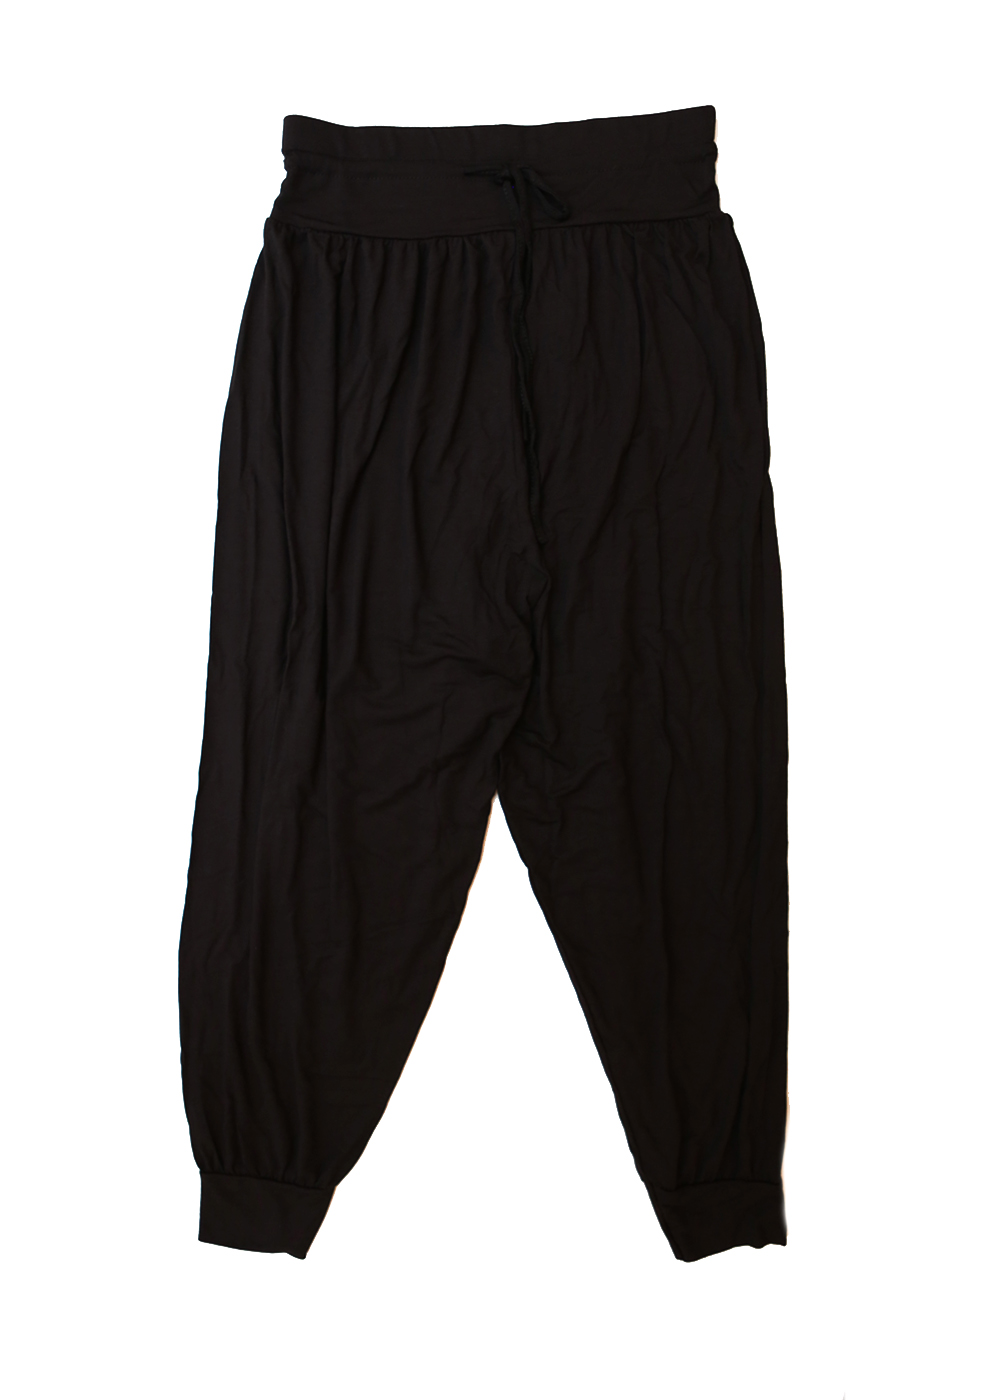 You searched for: black harem pants! Etsy is the home to thousands of handmade, vintage, and one-of-a-kind products and gifts related to your search. No matter what you're looking for or where you are in the world, our global marketplace of sellers can help you find unique and affordable options. Let's get started!